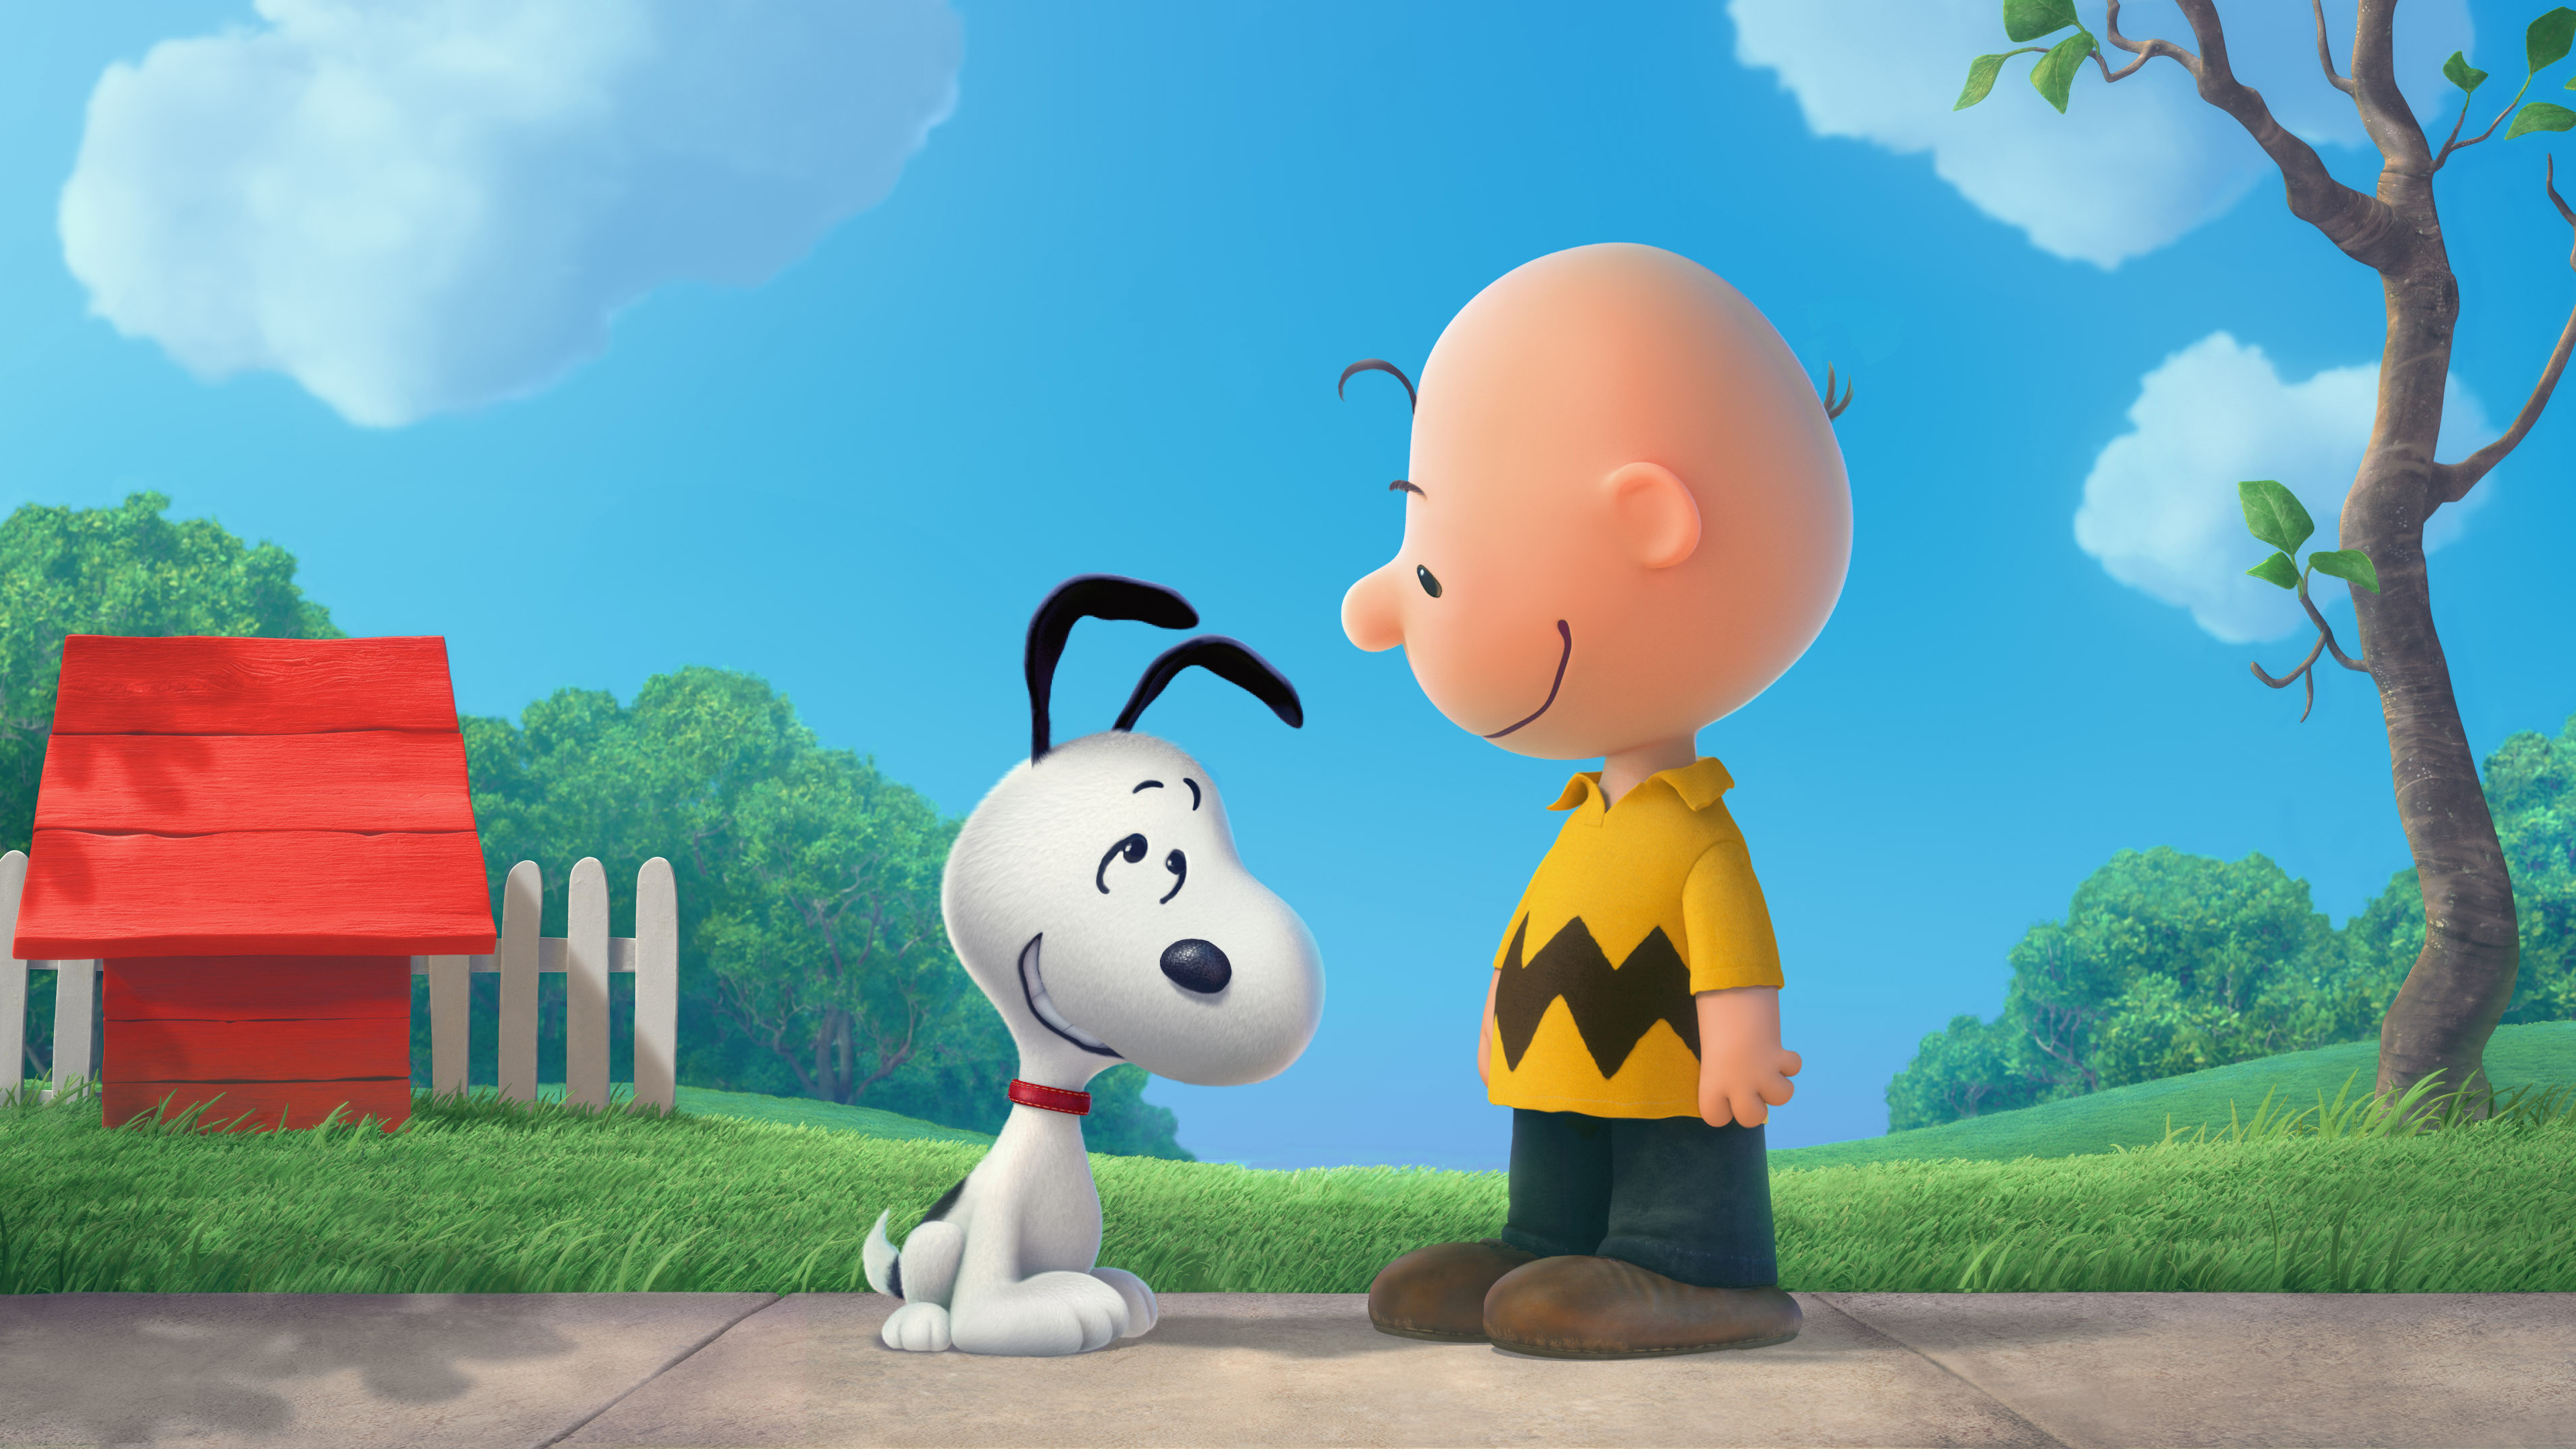 19 charlie brown hd wallpapers | background images - wallpaper abyss